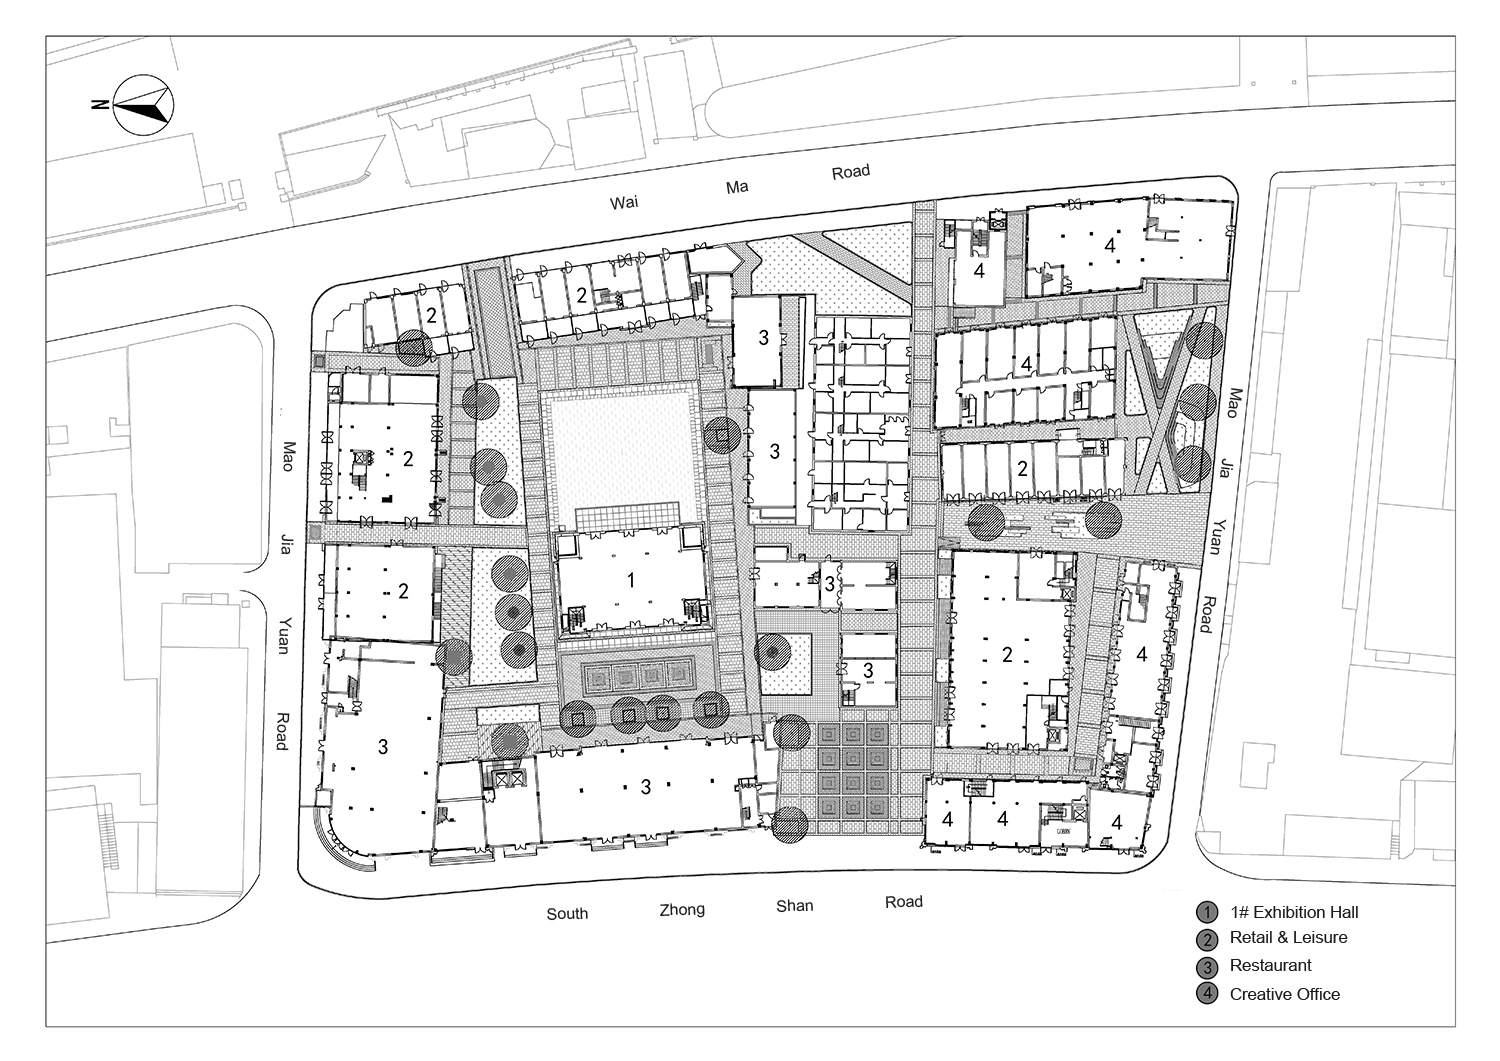 Ground floor layout courtesy of Sunyat}